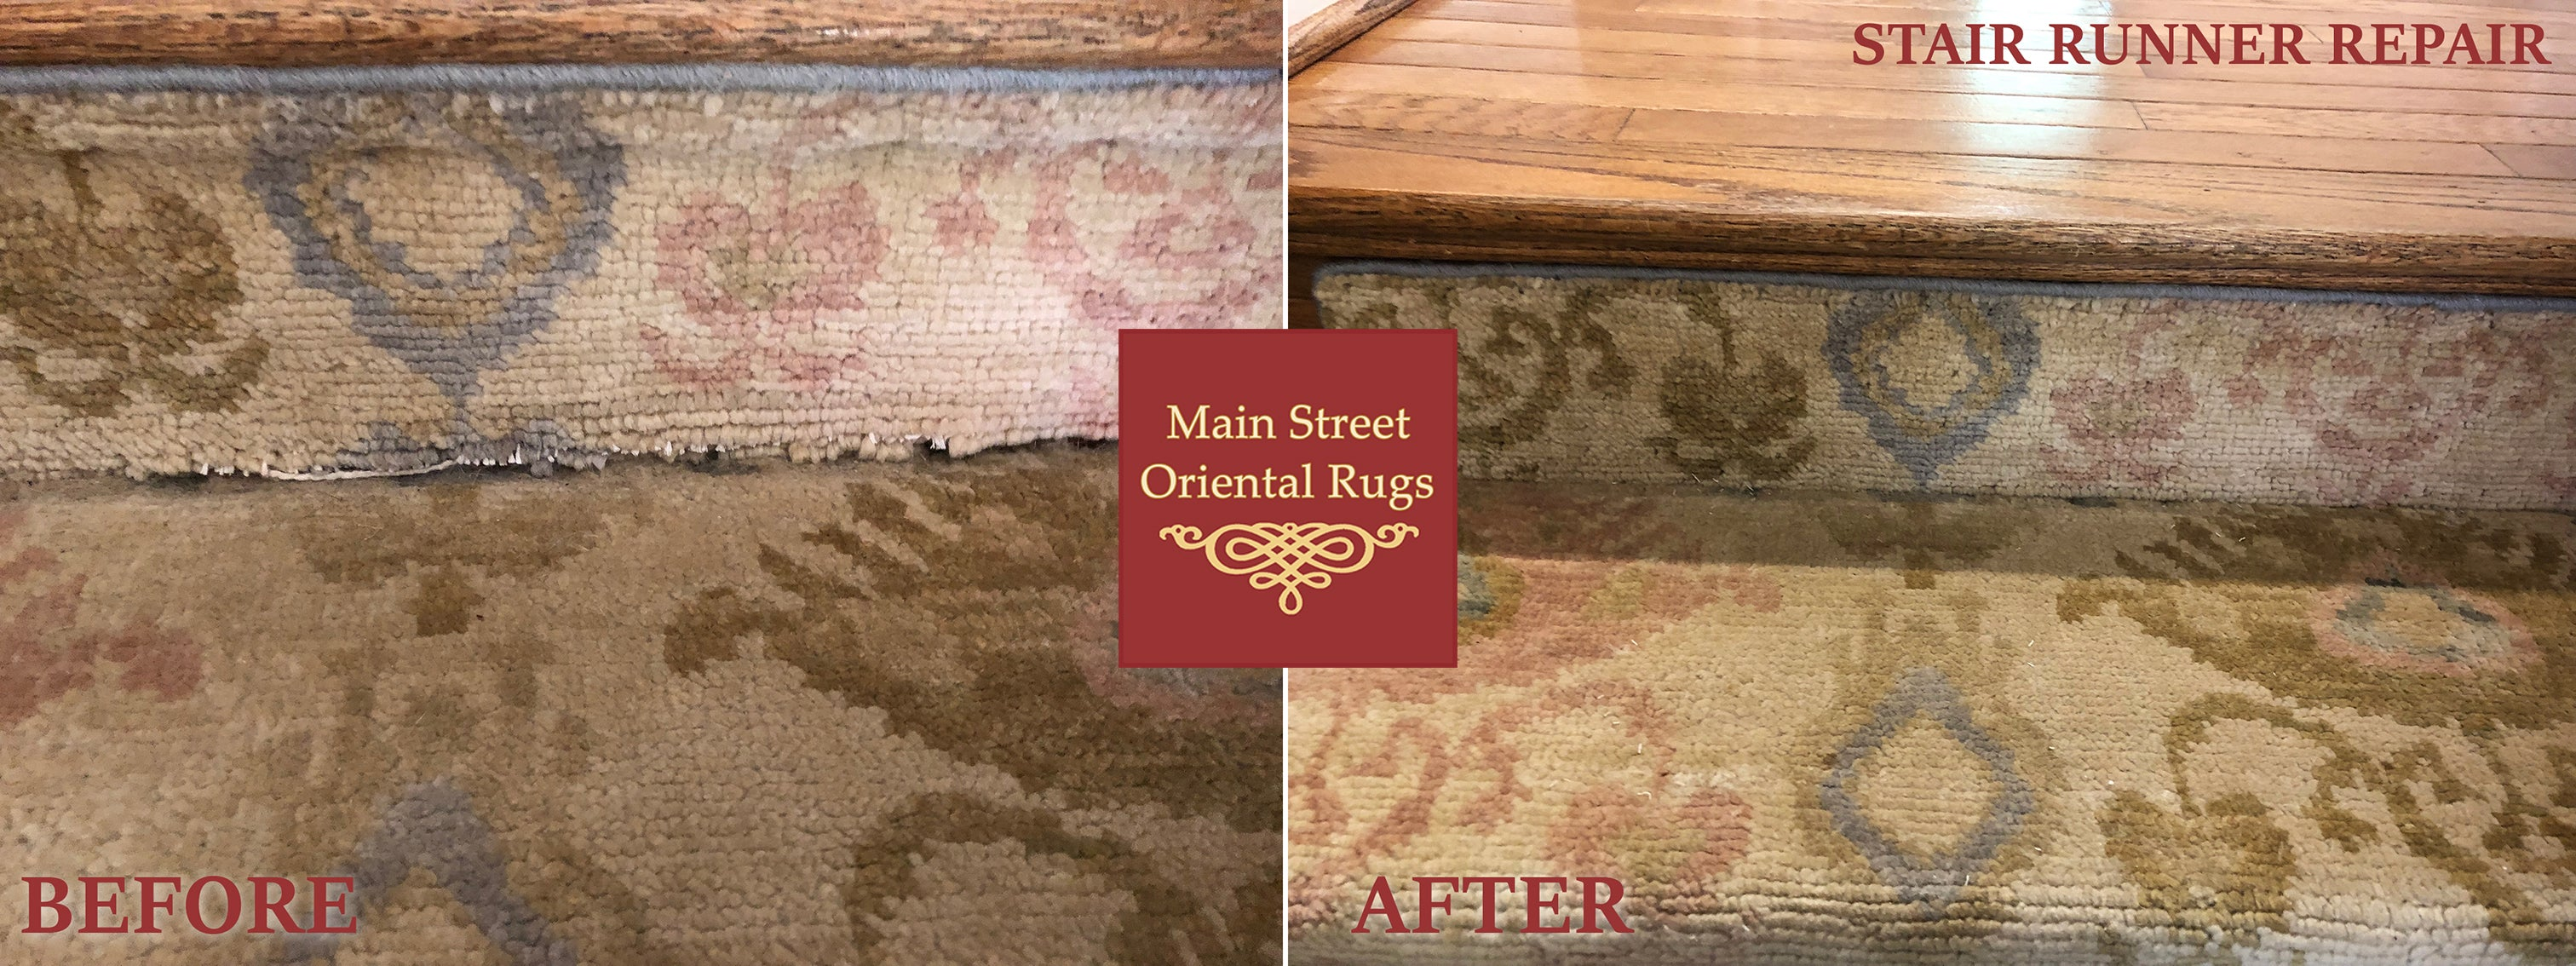 Stair Runner Repair Before & After